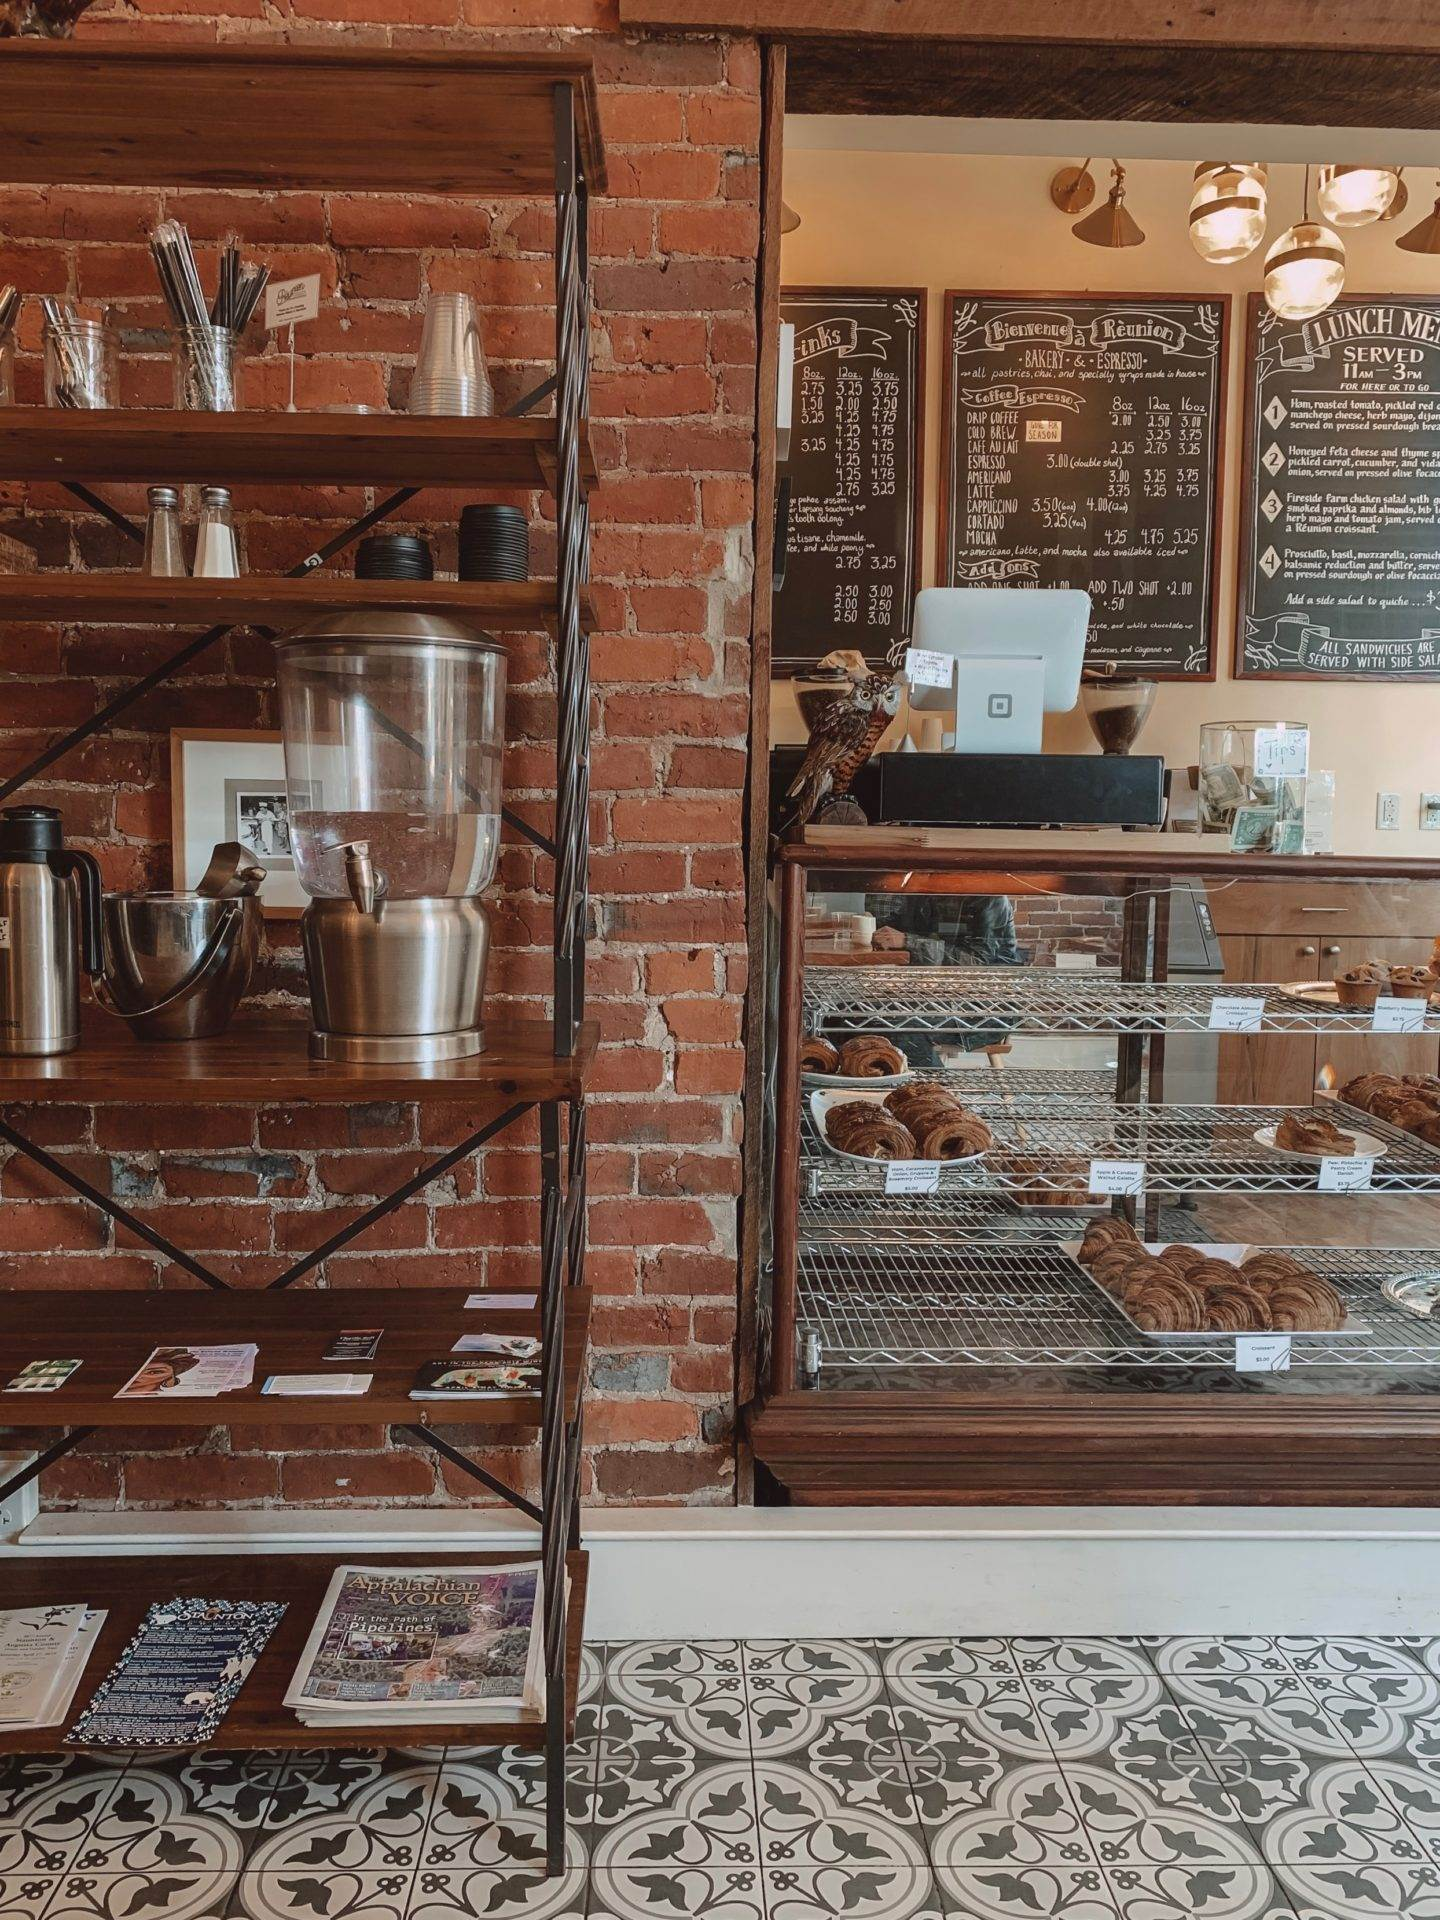 A Weekend Travel Guide to Staunton, VA